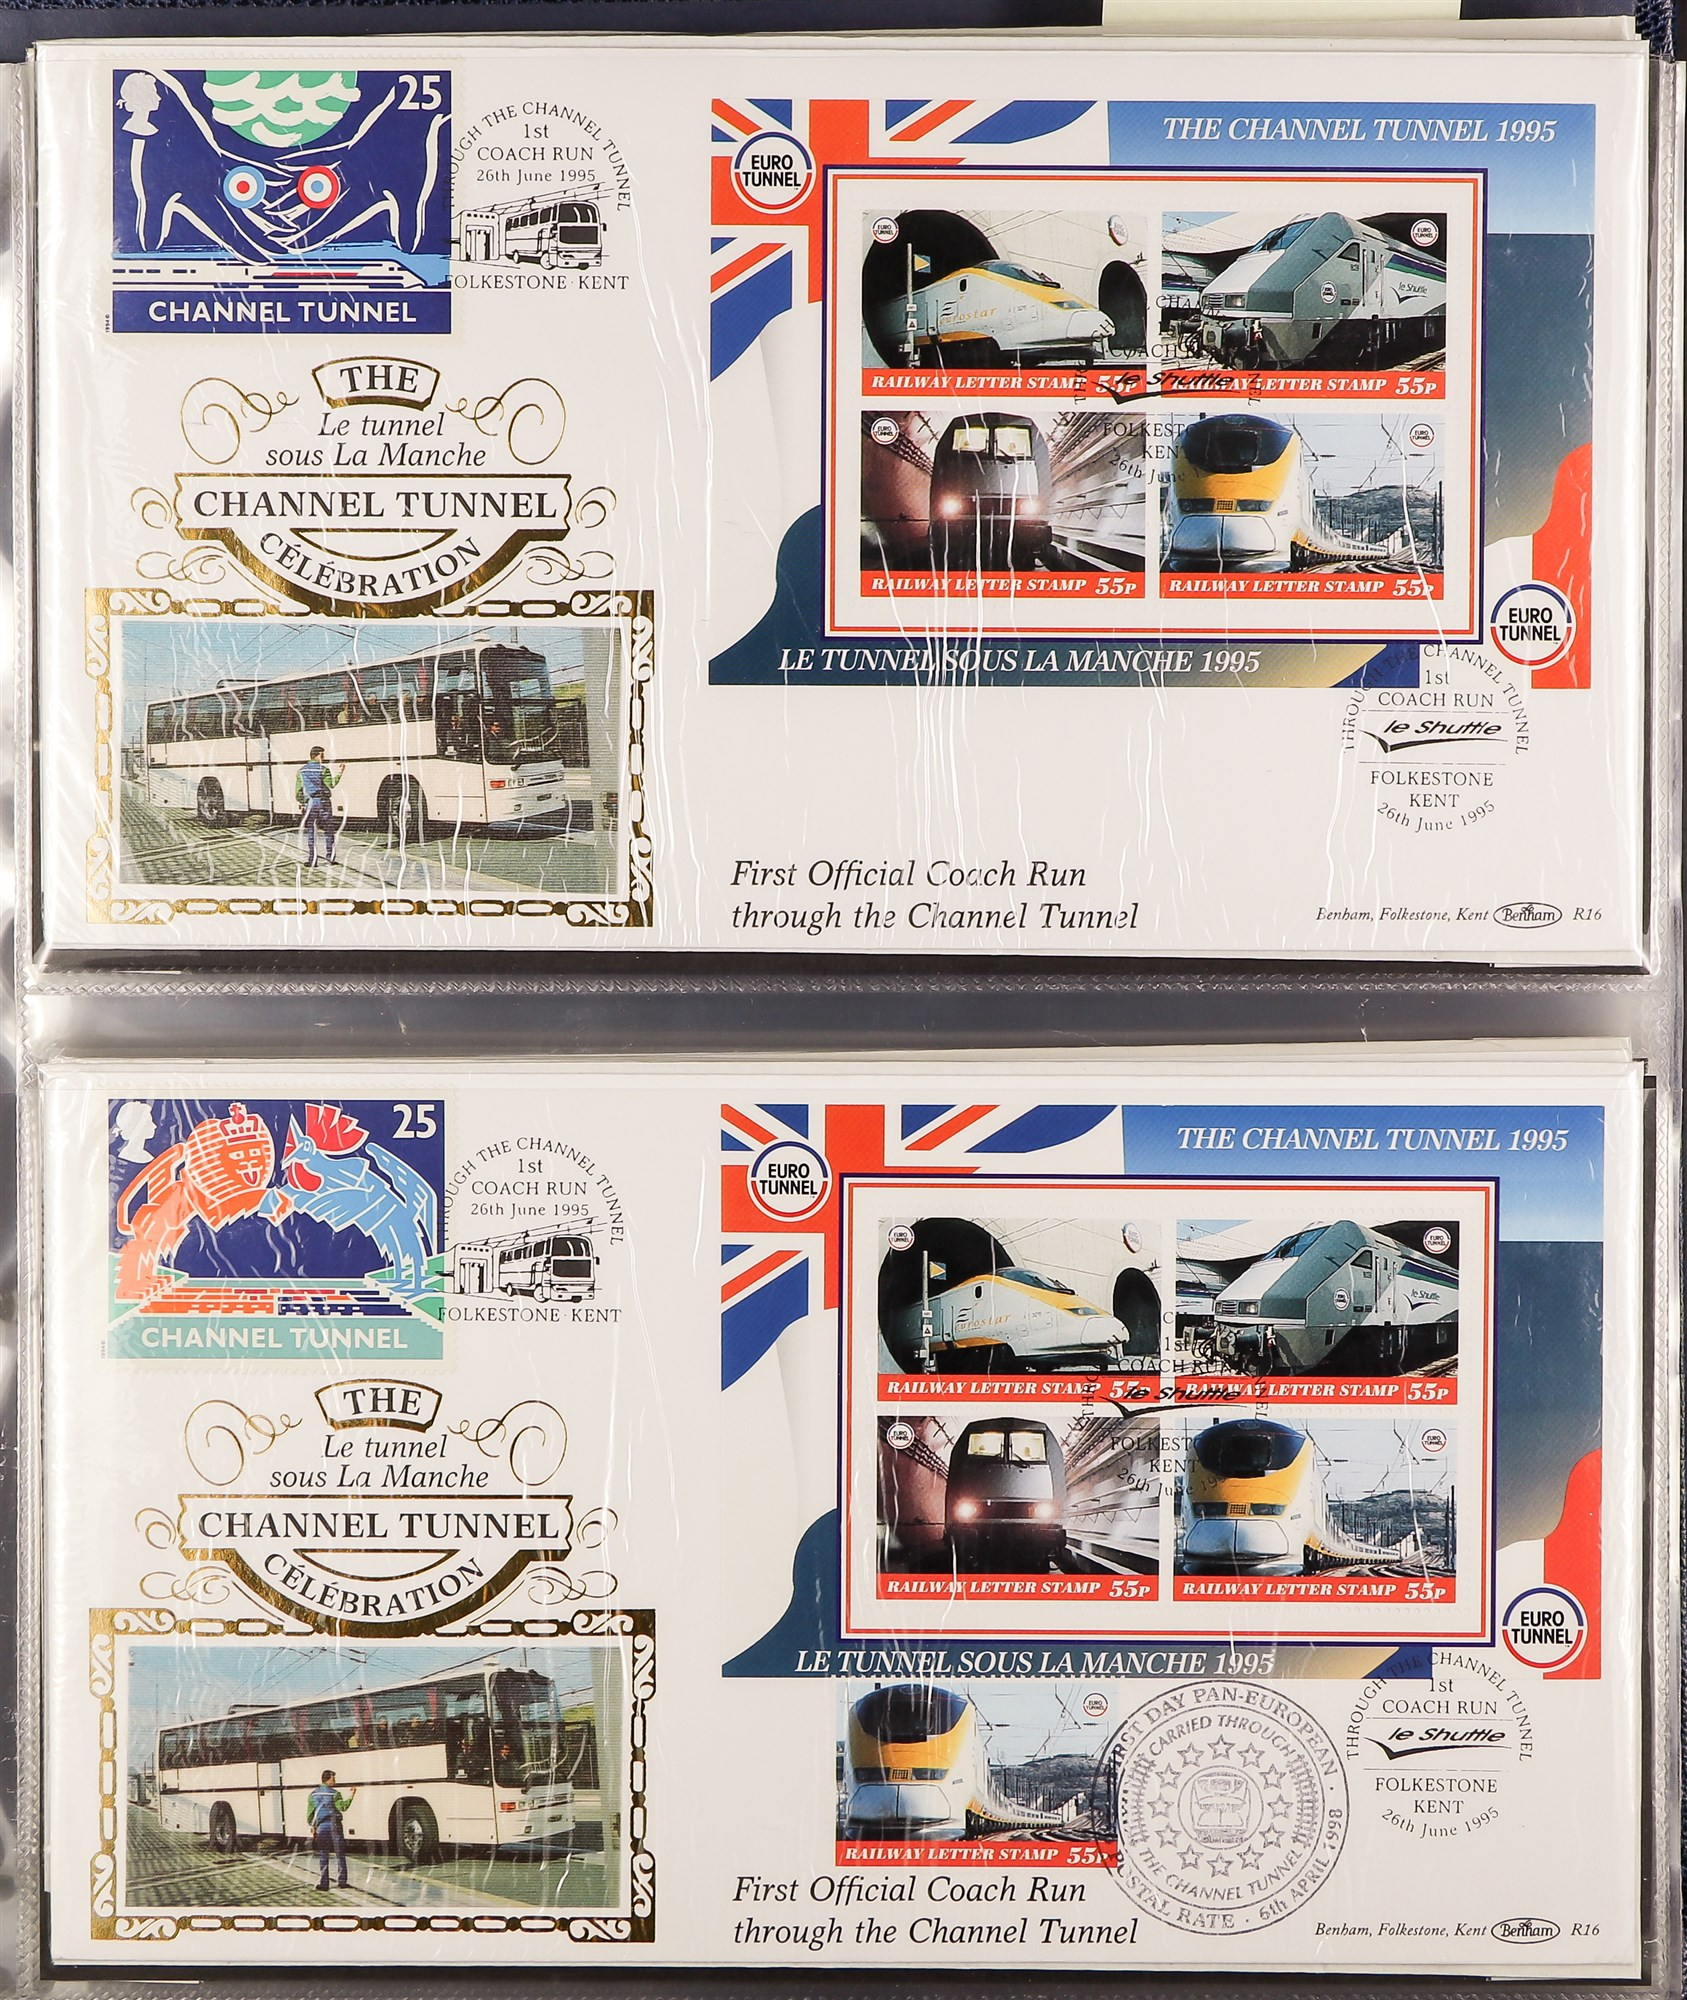 GREAT BRITAIN CHANNEL TUNNEL 1994-2001 BENHAM COVERS COLLECTION in an album, all different. (45 - Image 2 of 5